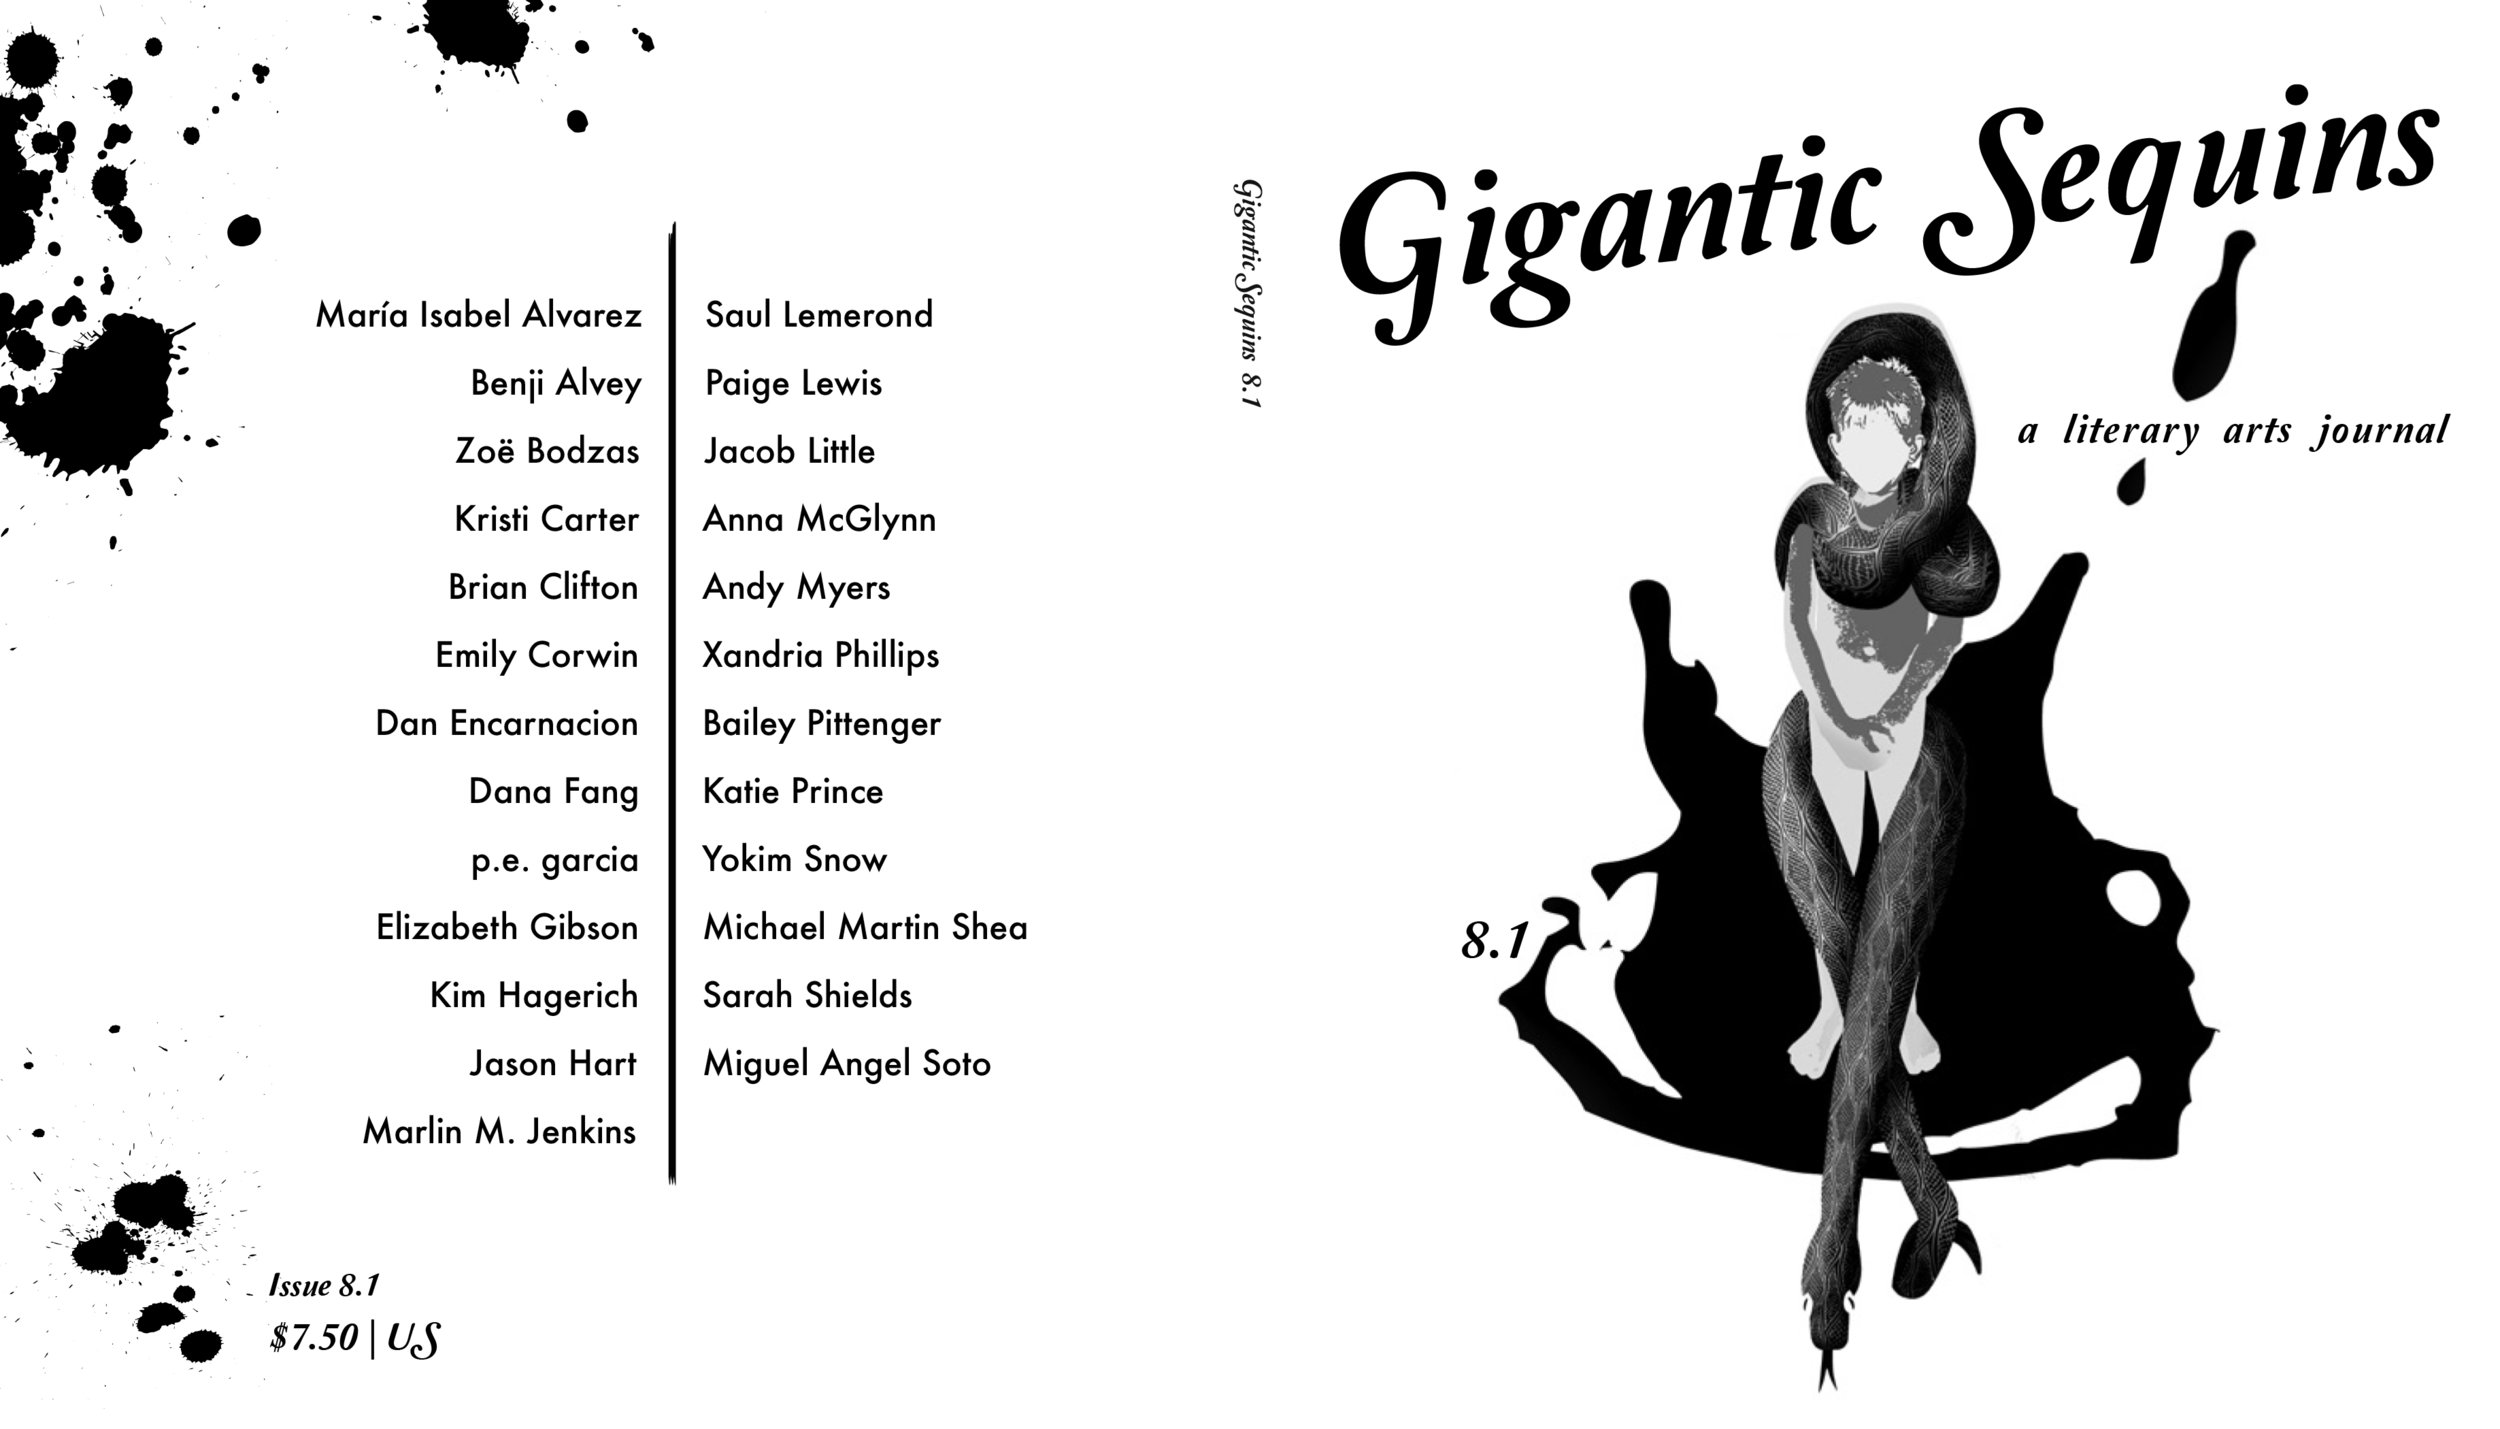 Cover design + interior layout for   Gigantic Sequins: A Literary Arts Journal  ,  Issue 8.1  (January 2017).